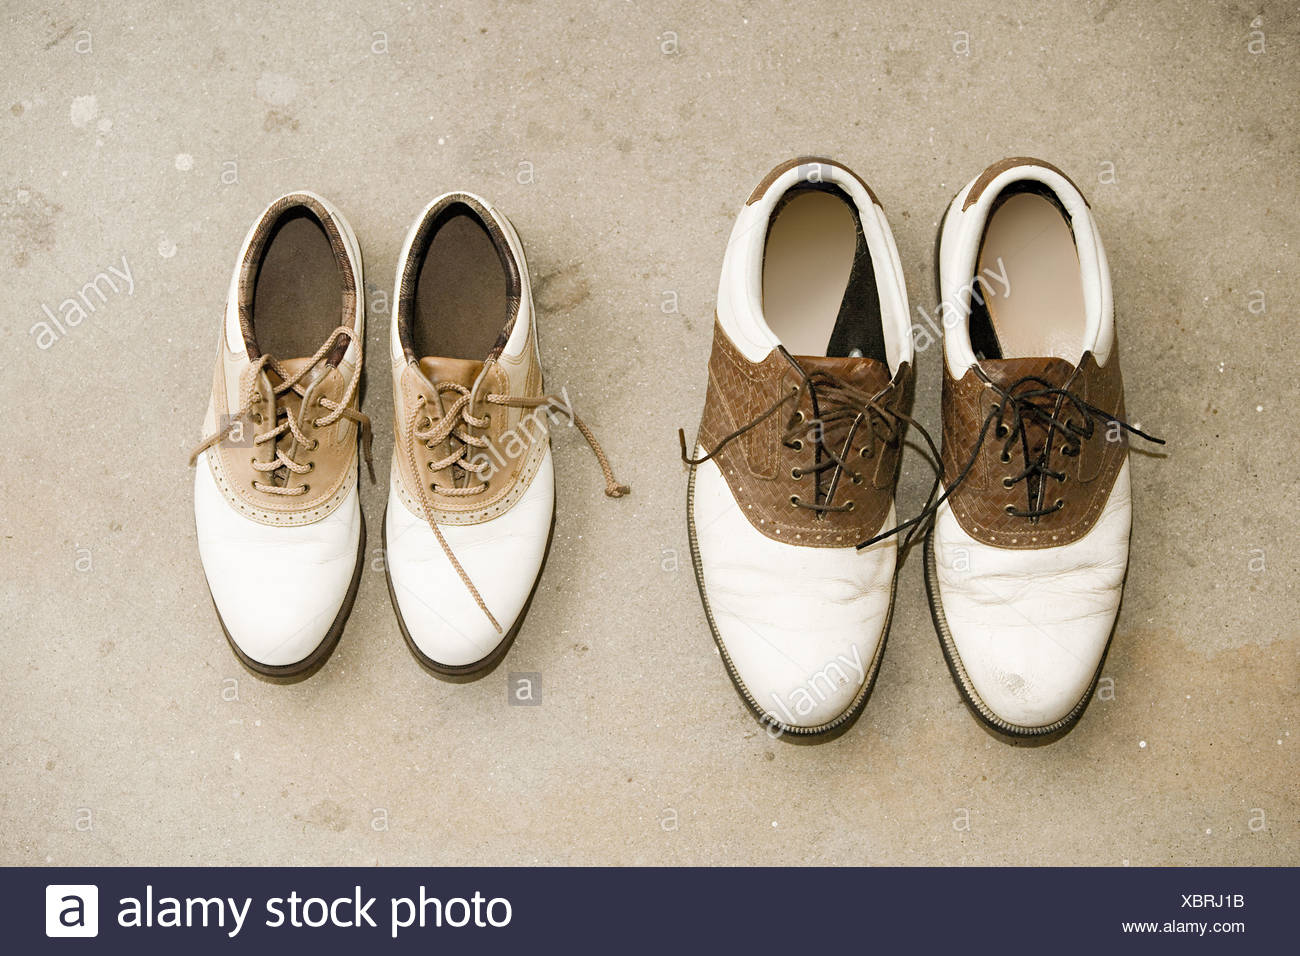 Two pairs of shoes - Stock Image